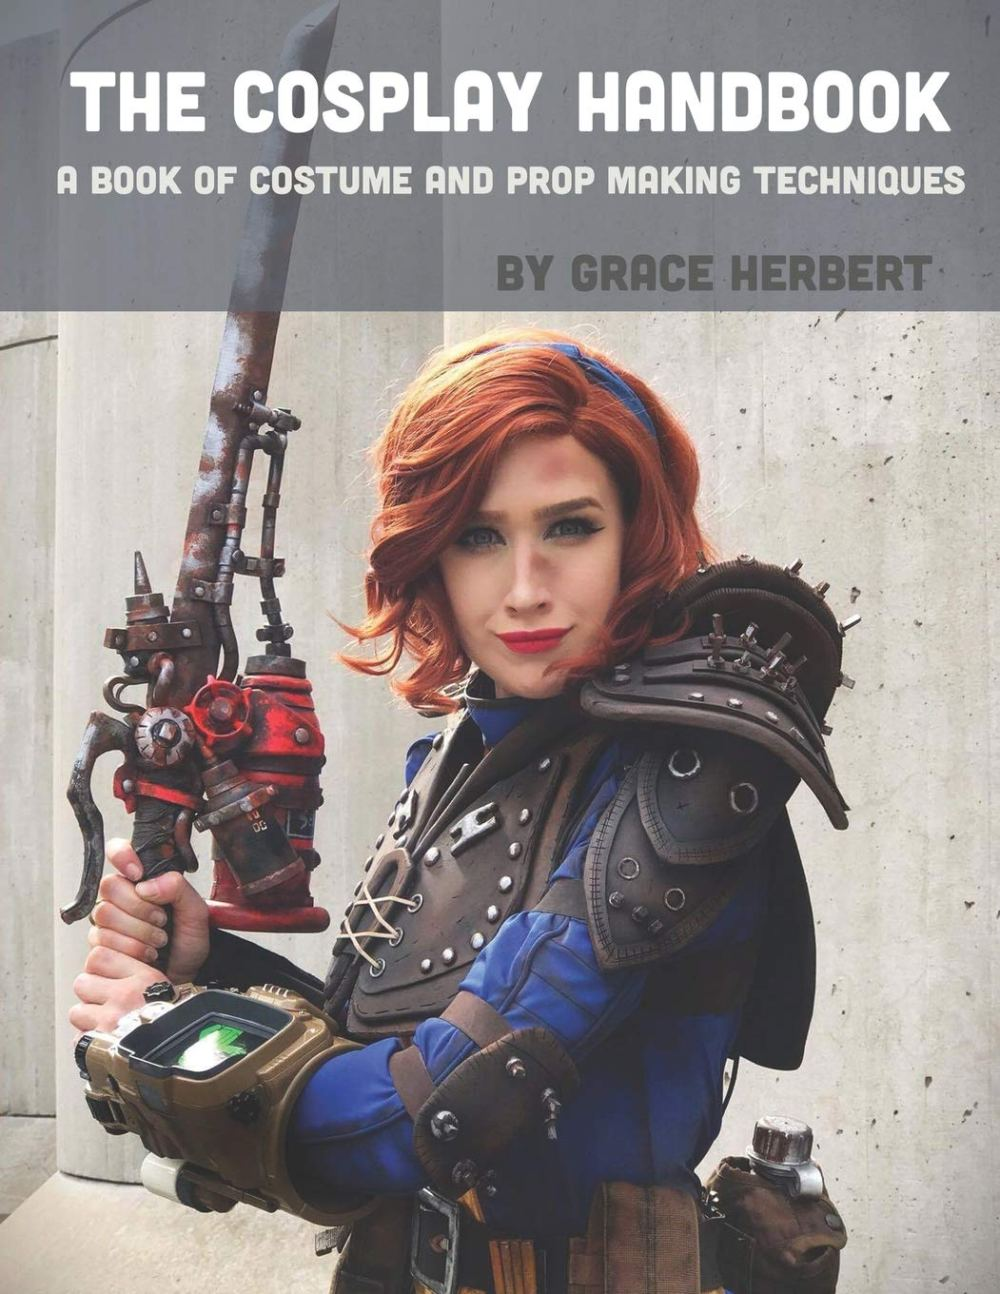 The Cosplay Handbook: A Book of Cosplay and Prop Making Techniques Paperback